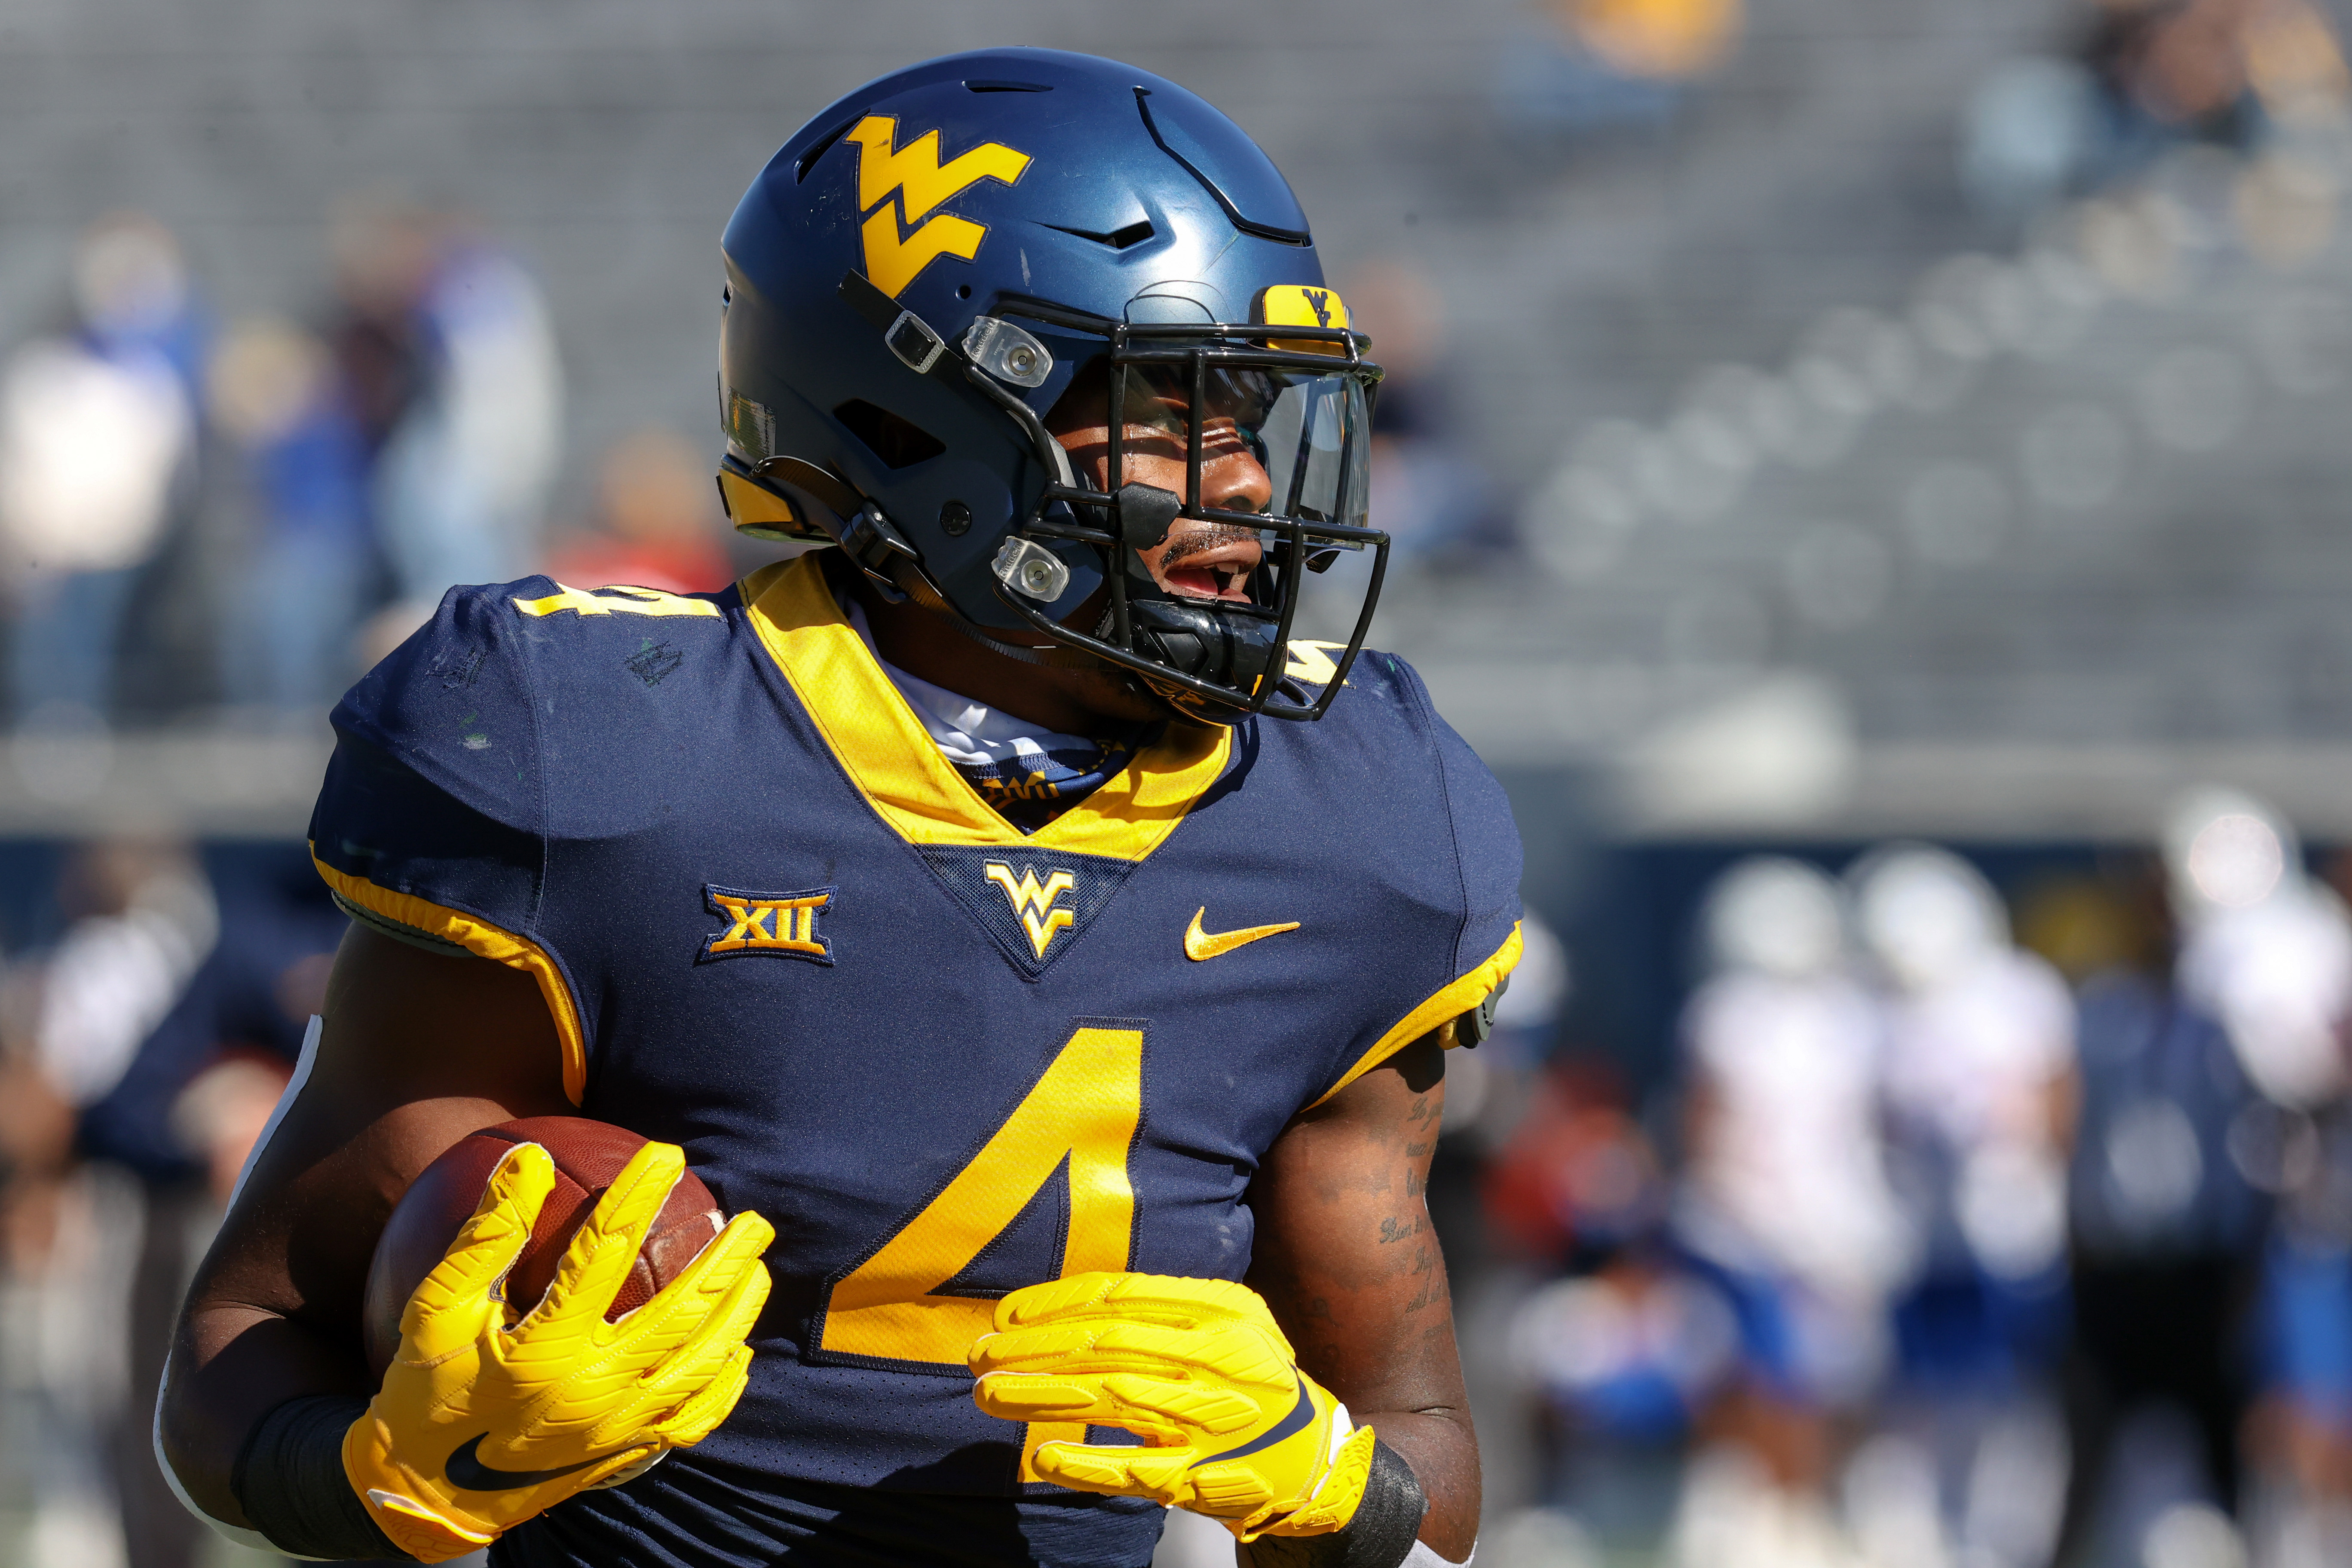 COLLEGE FOOTBALL: OCT 17 Kansas at West Virginia